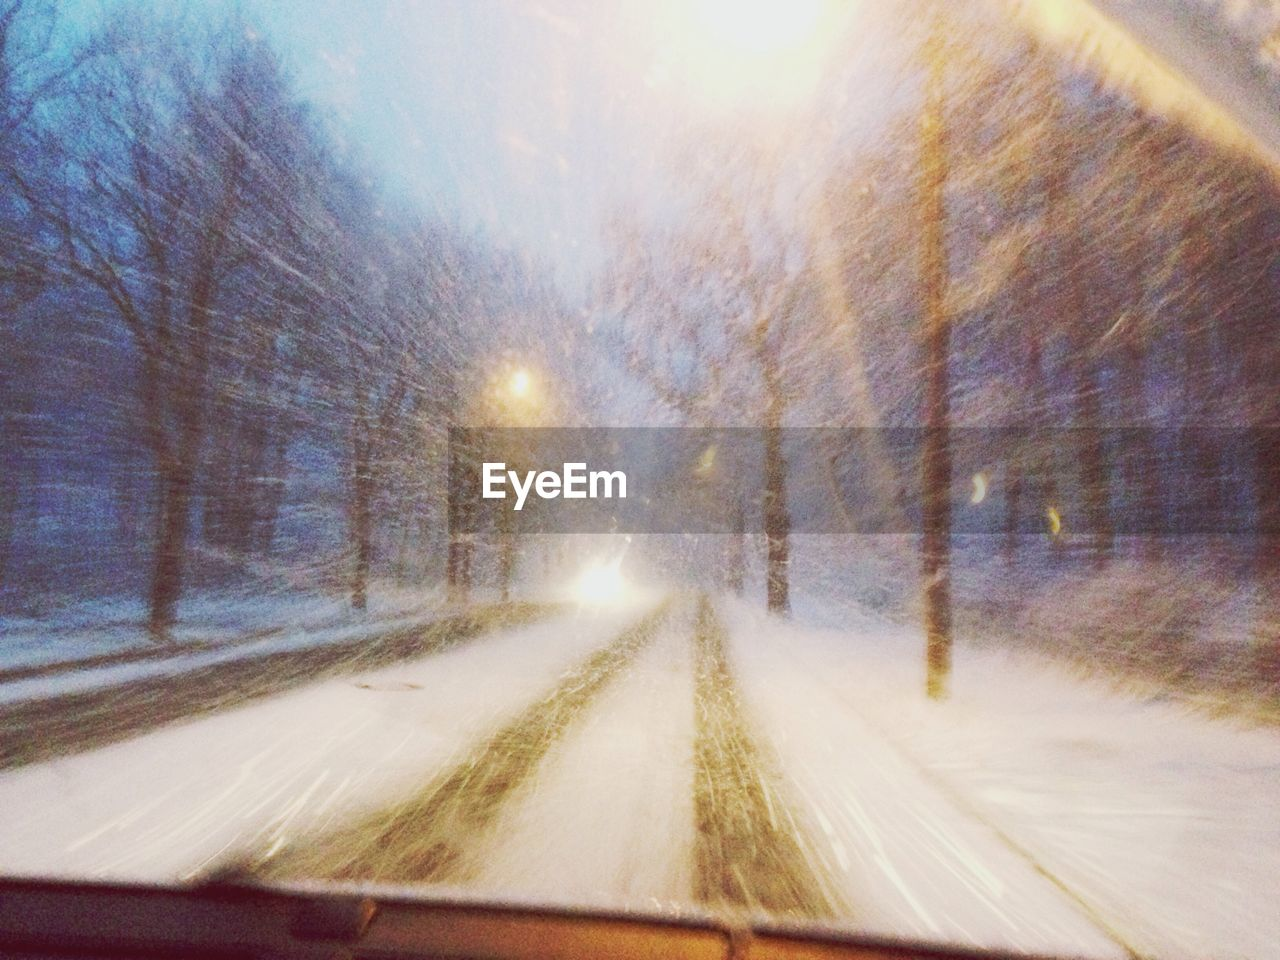 winter, cold temperature, snow, vehicle interior, windshield, transportation, weather, the way forward, no people, road, car, car interior, nature, illuminated, land vehicle, car point of view, day, outdoors, snowing, tree, beauty in nature, sky